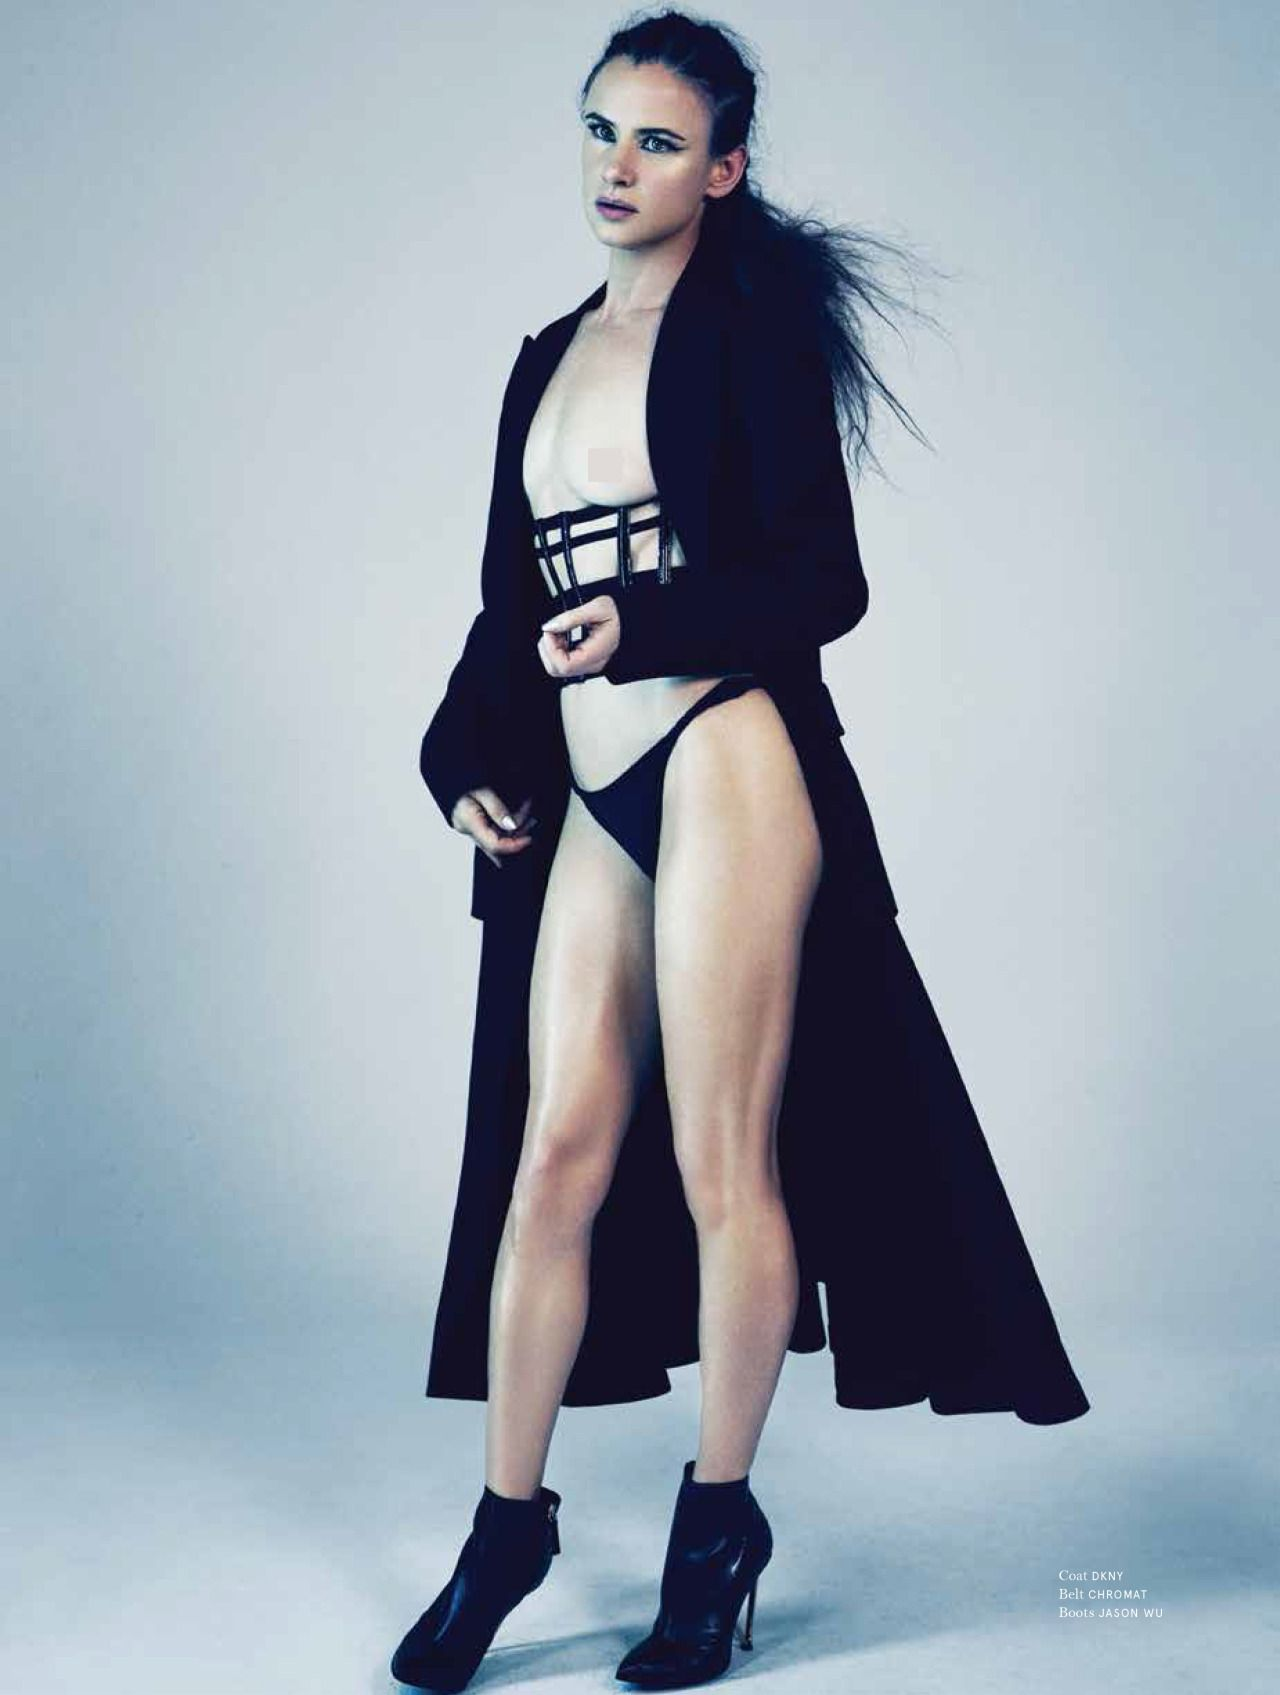 CHROMAT: Juliette Lewis blessing us with her goddess vibes ...